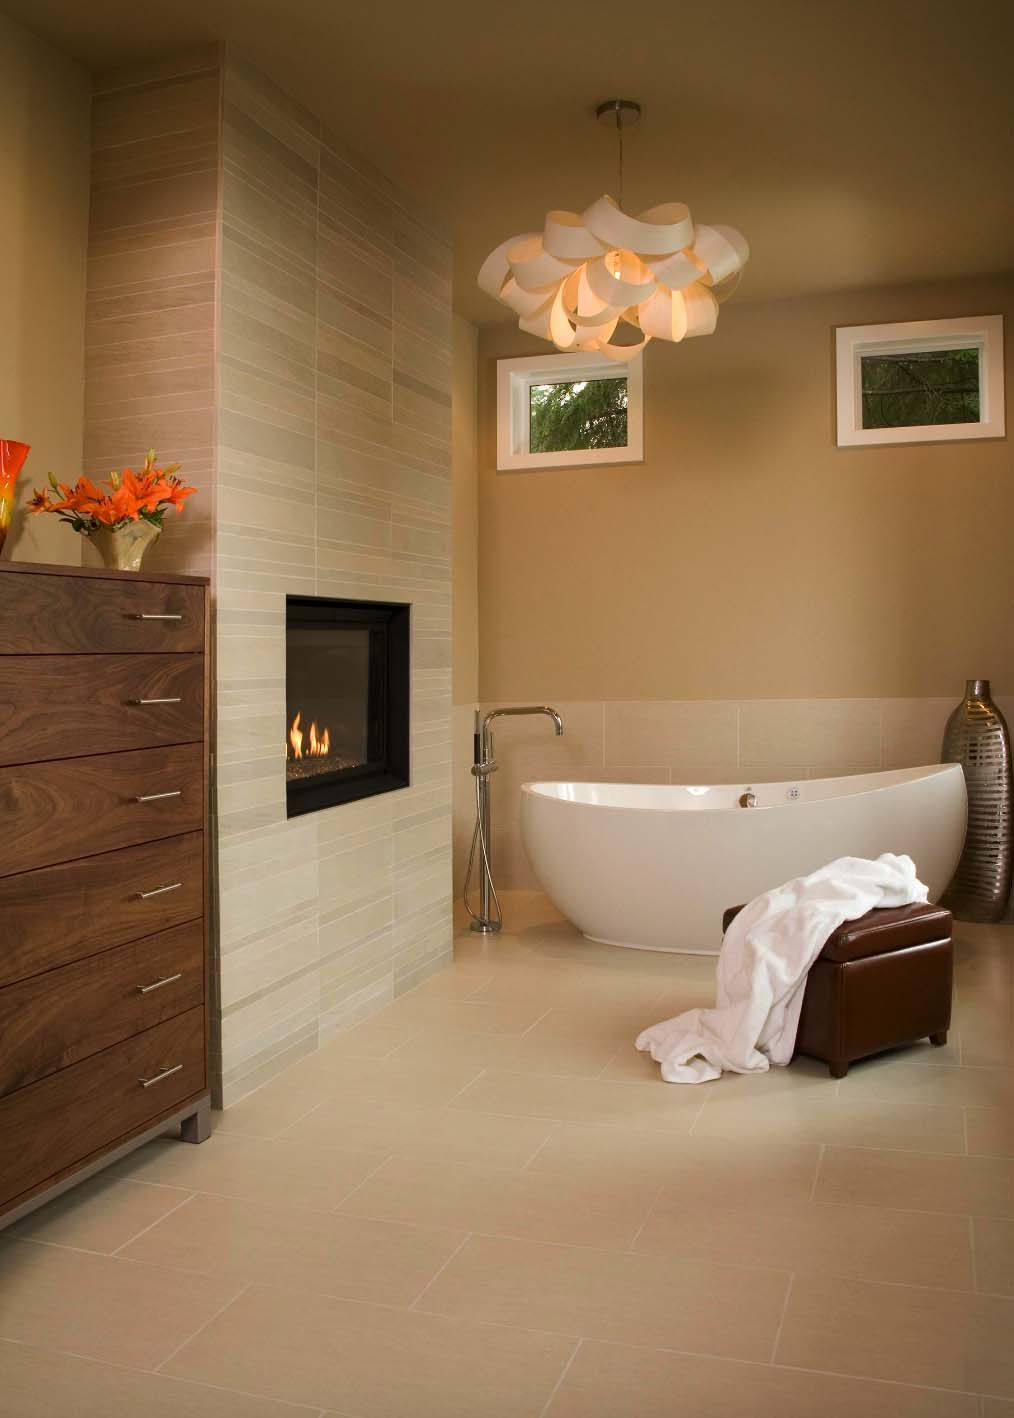 20 Inspiring Ideas To Create A Dreamy Master Bathroom Retreat Bathroom Fireplace Master Bathroom Makeover Bathrooms Remodel